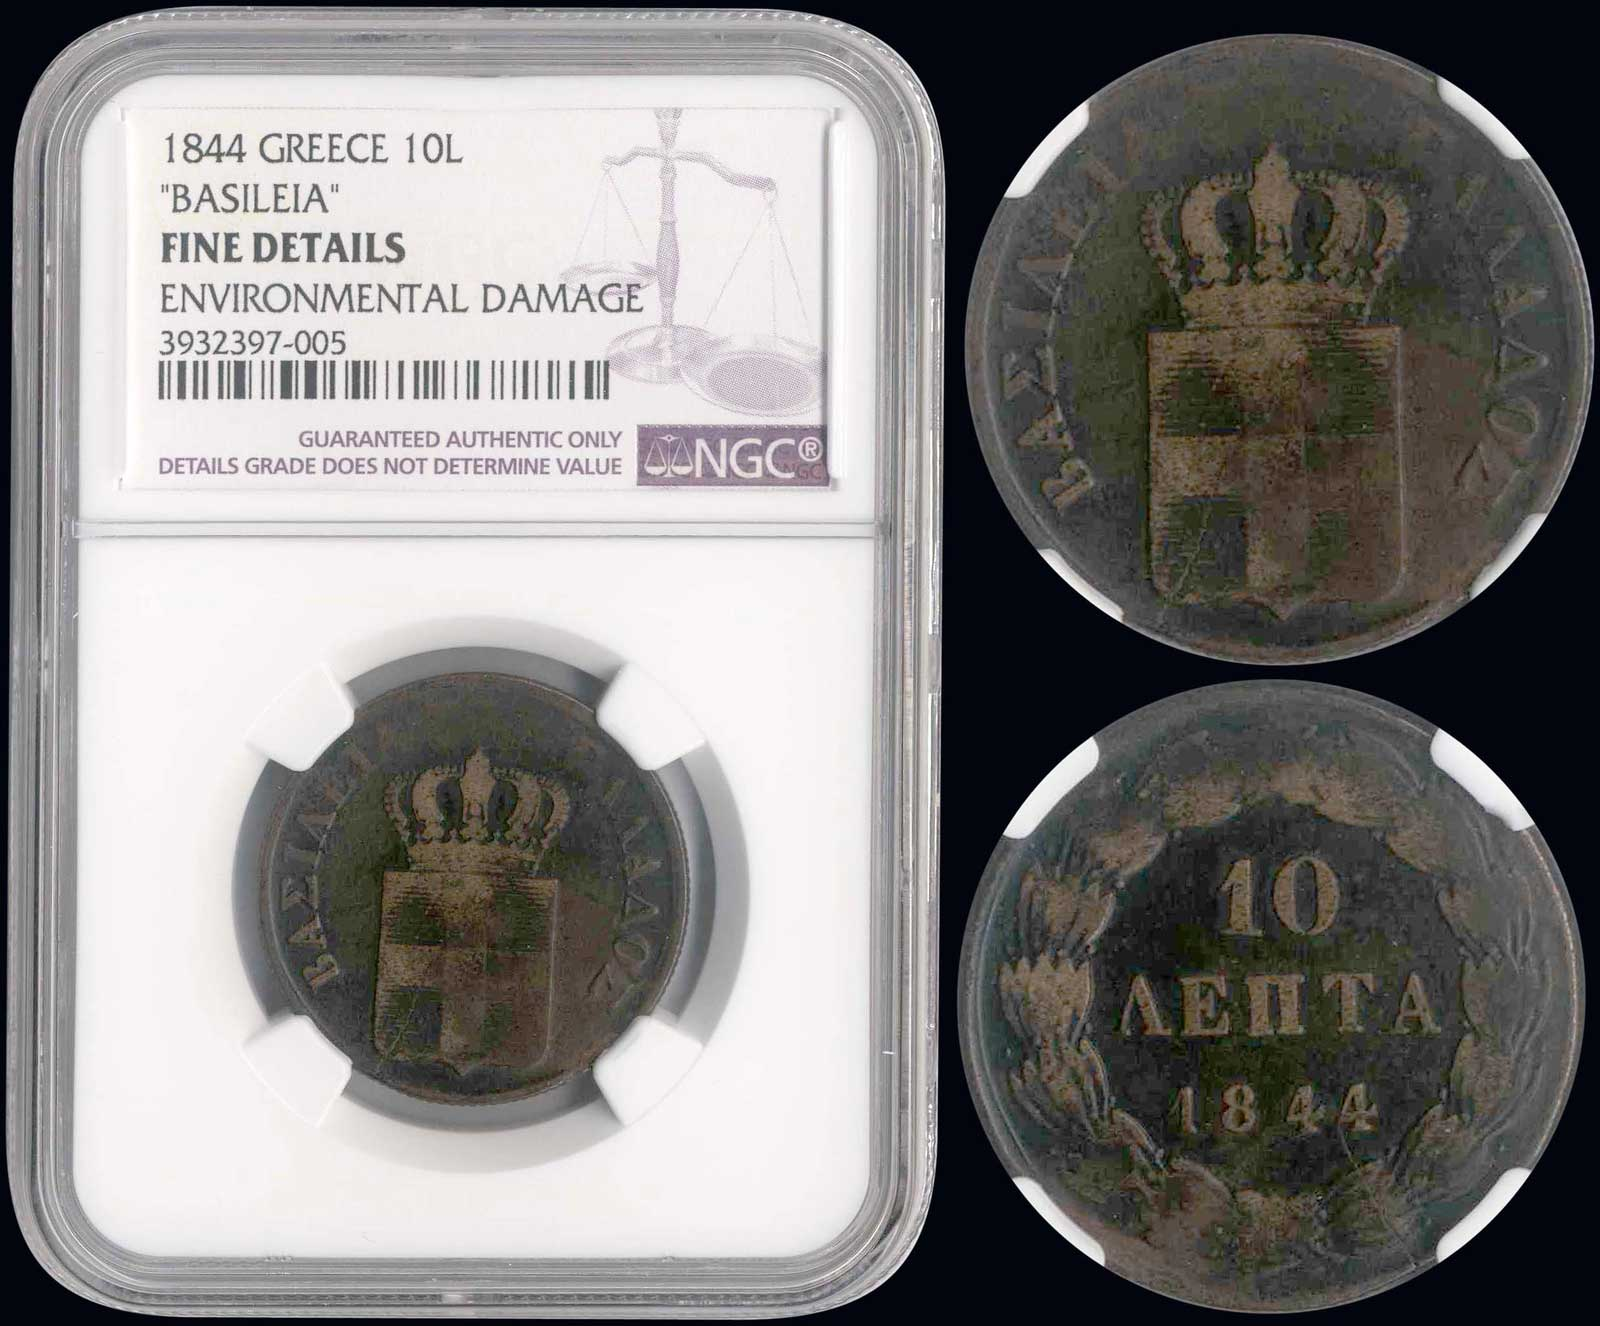 Lot 9076 - GREECE-  COINS & TOKENS king otto -  A. Karamitsos Public & LIVE Bid Auction 606 Coins, Medals & Banknotes